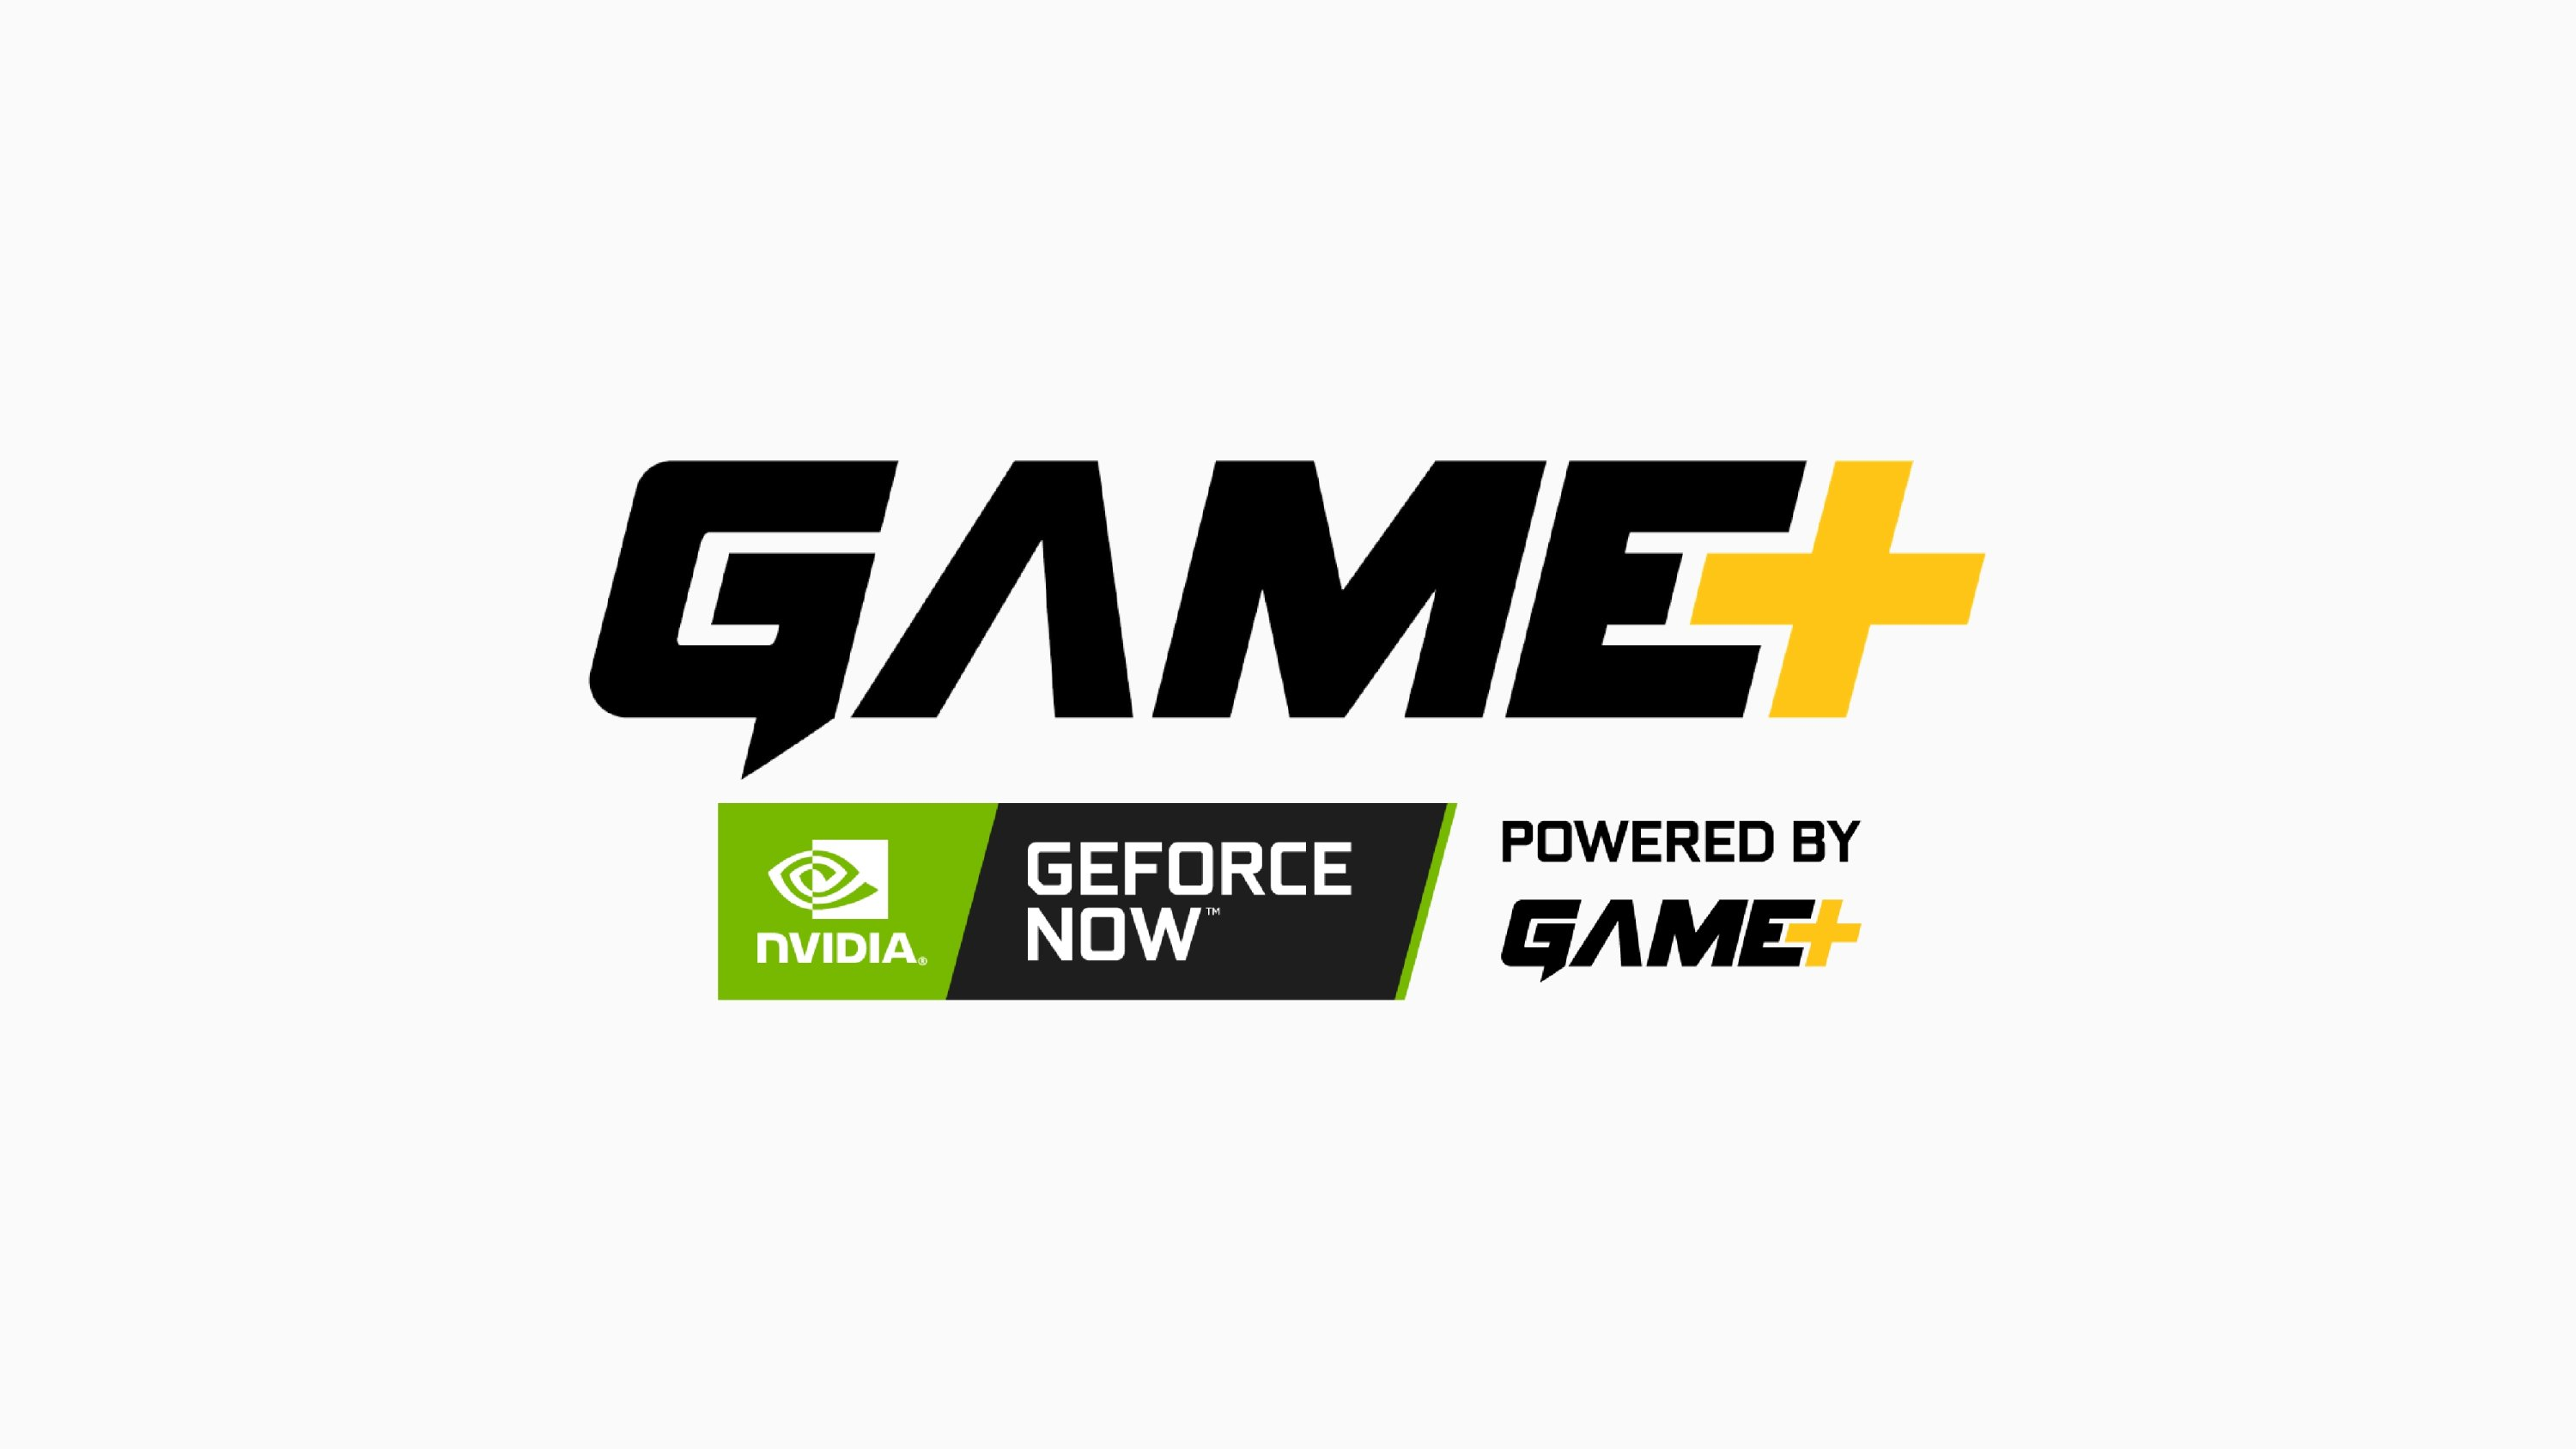 GeForce Now's Turkey server will be open to the public soon in partnership with GAME .